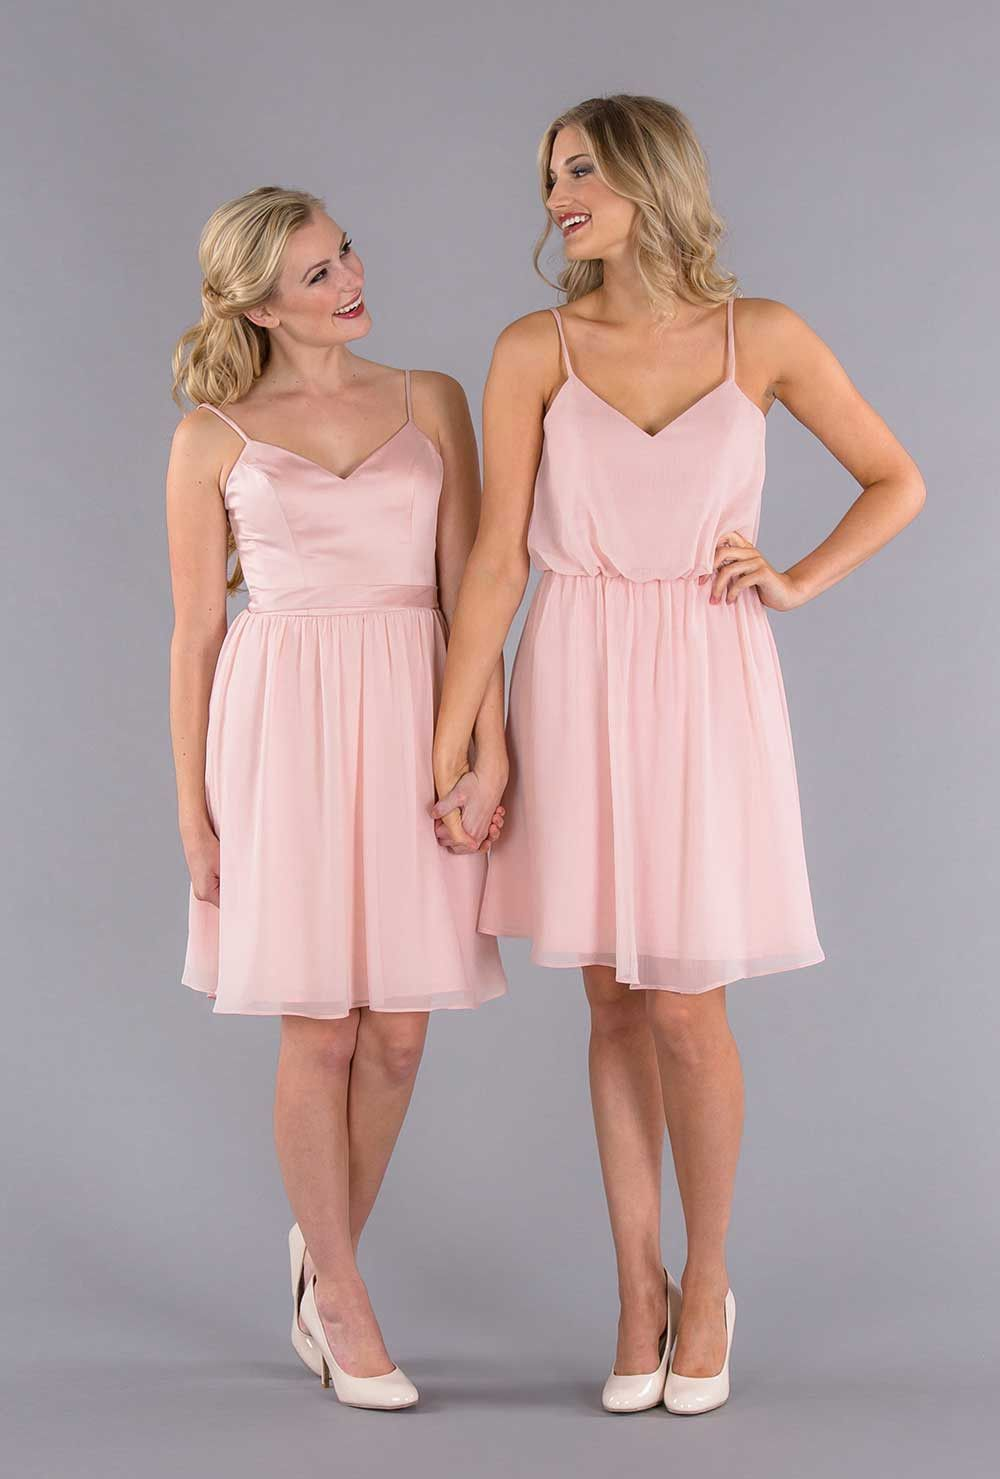 Kennedy Blue Bridesmaid Dresses Blair and Jodie | Kennedy Blue ...